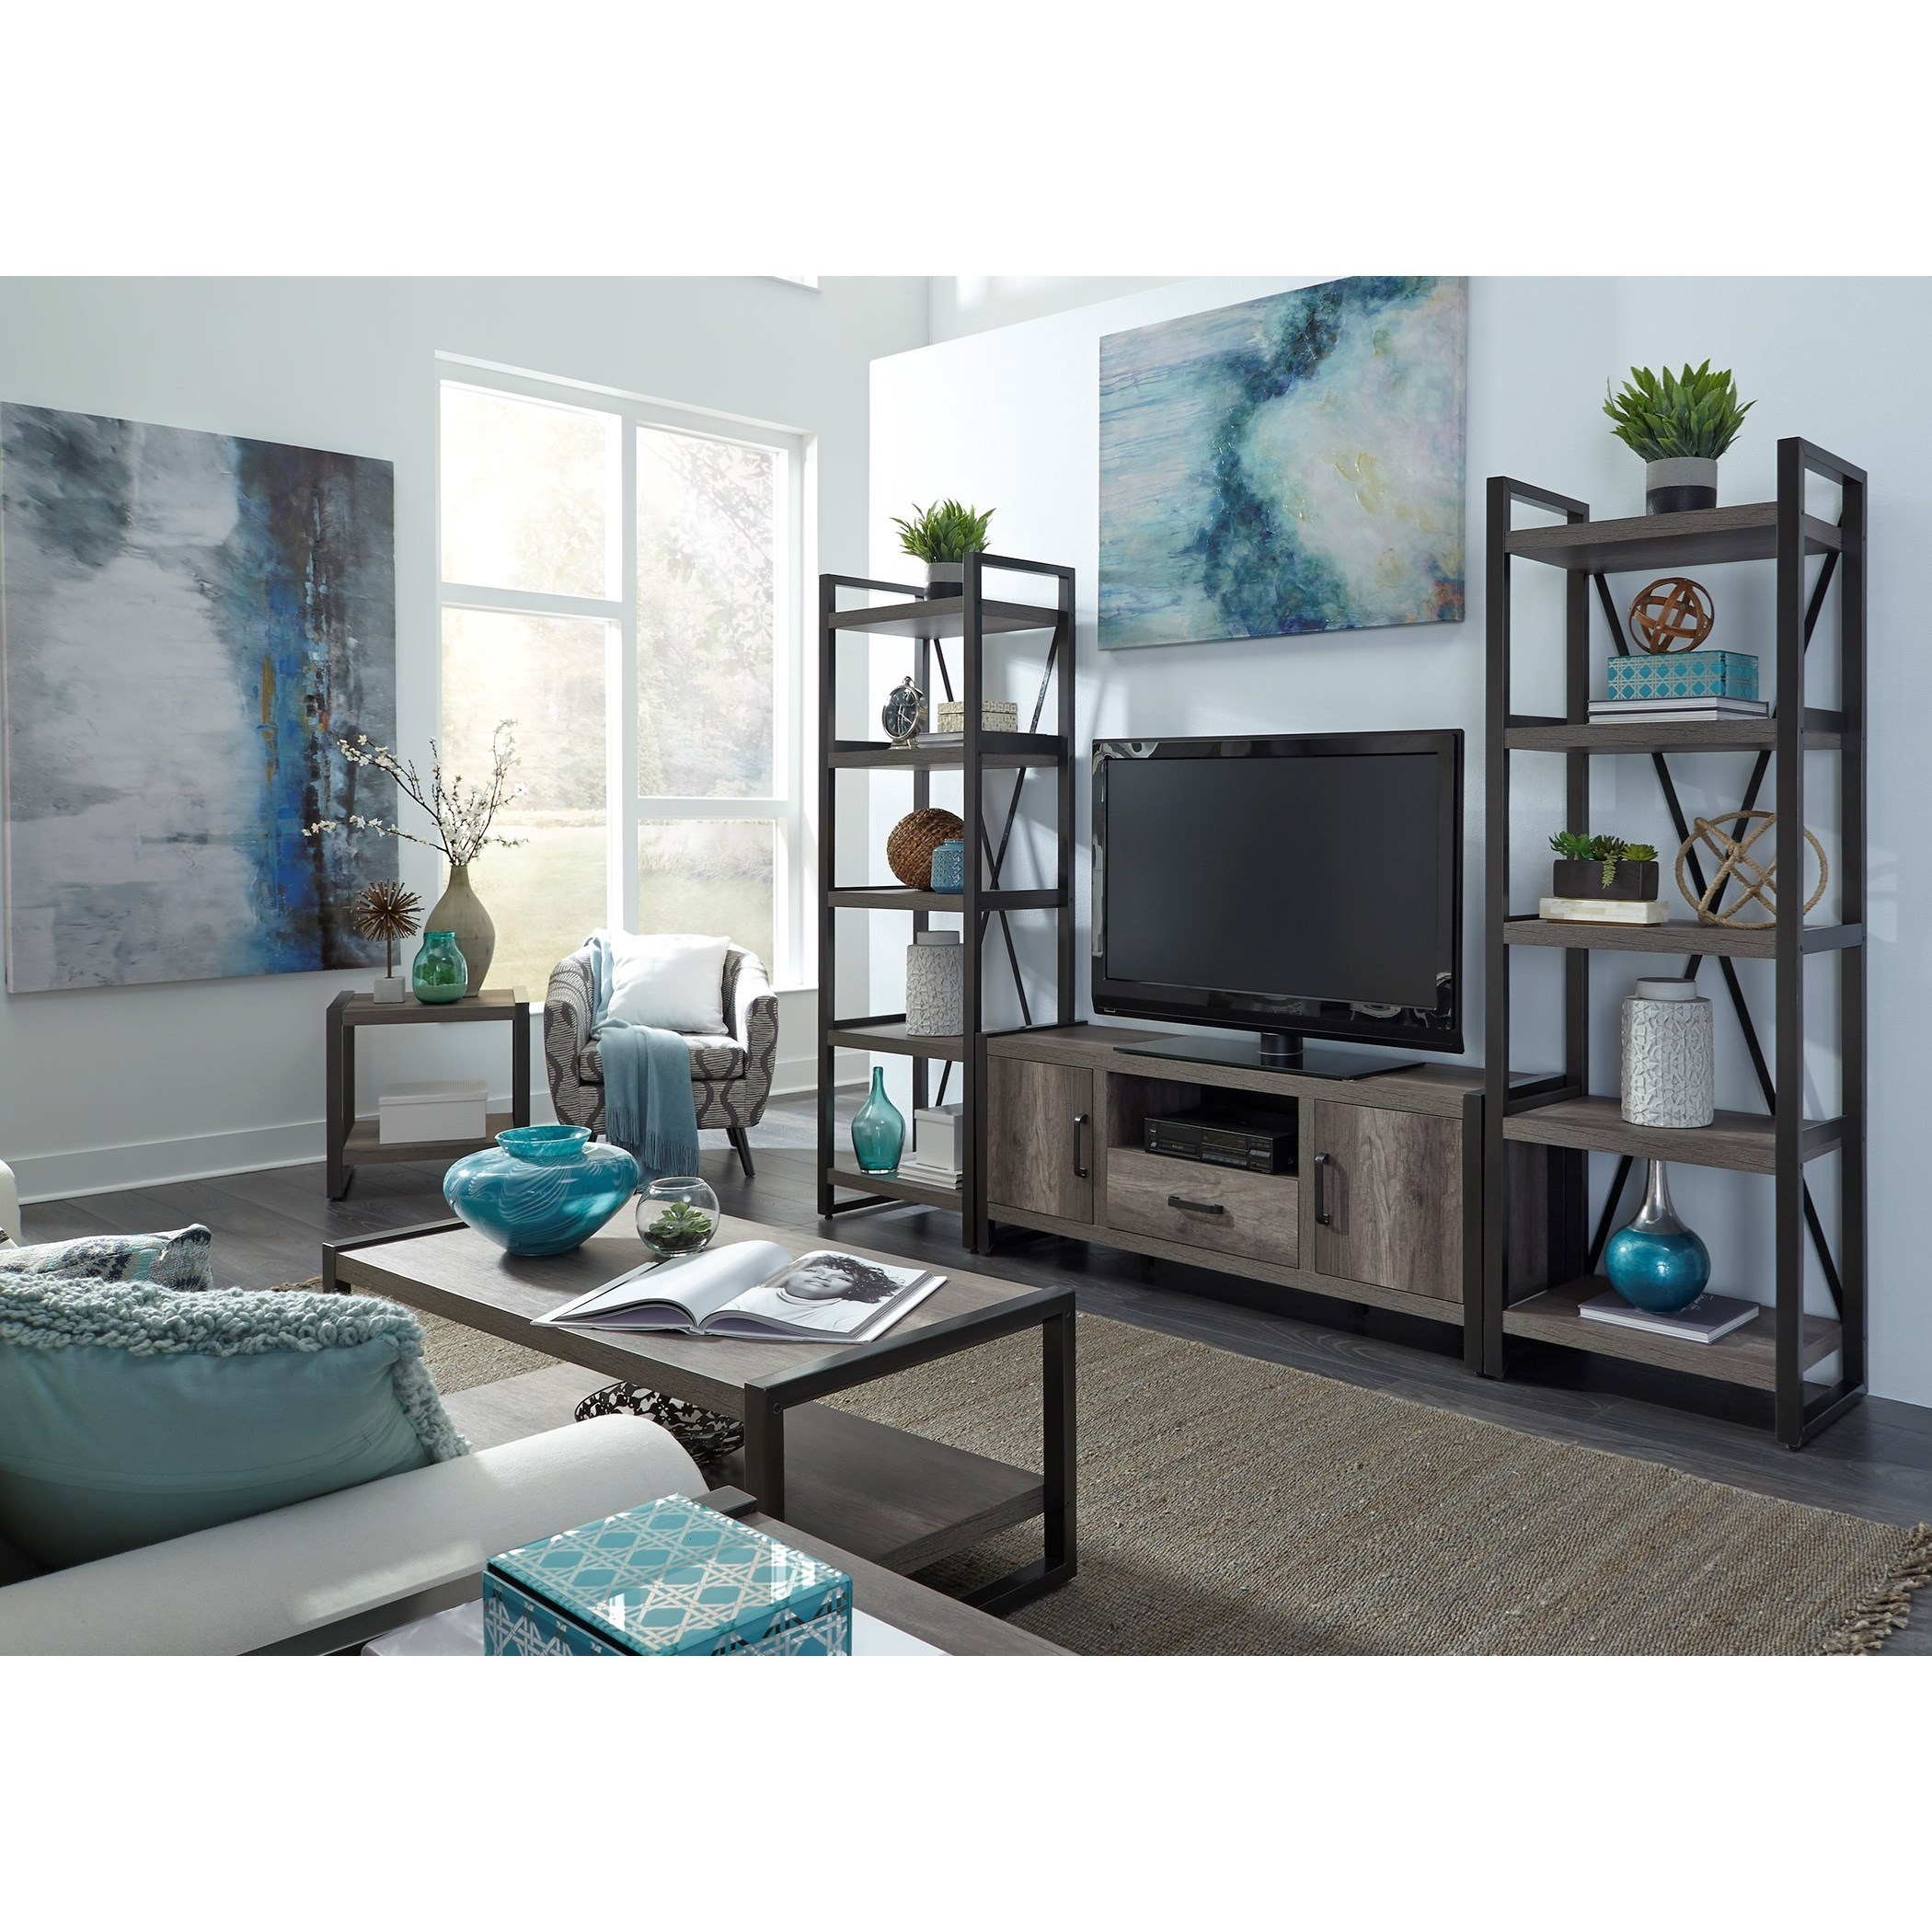 Liberty Furniture Tanners Creek Contemporary Entertainment Center With Tall Piers Royal Furniture Wall Unit